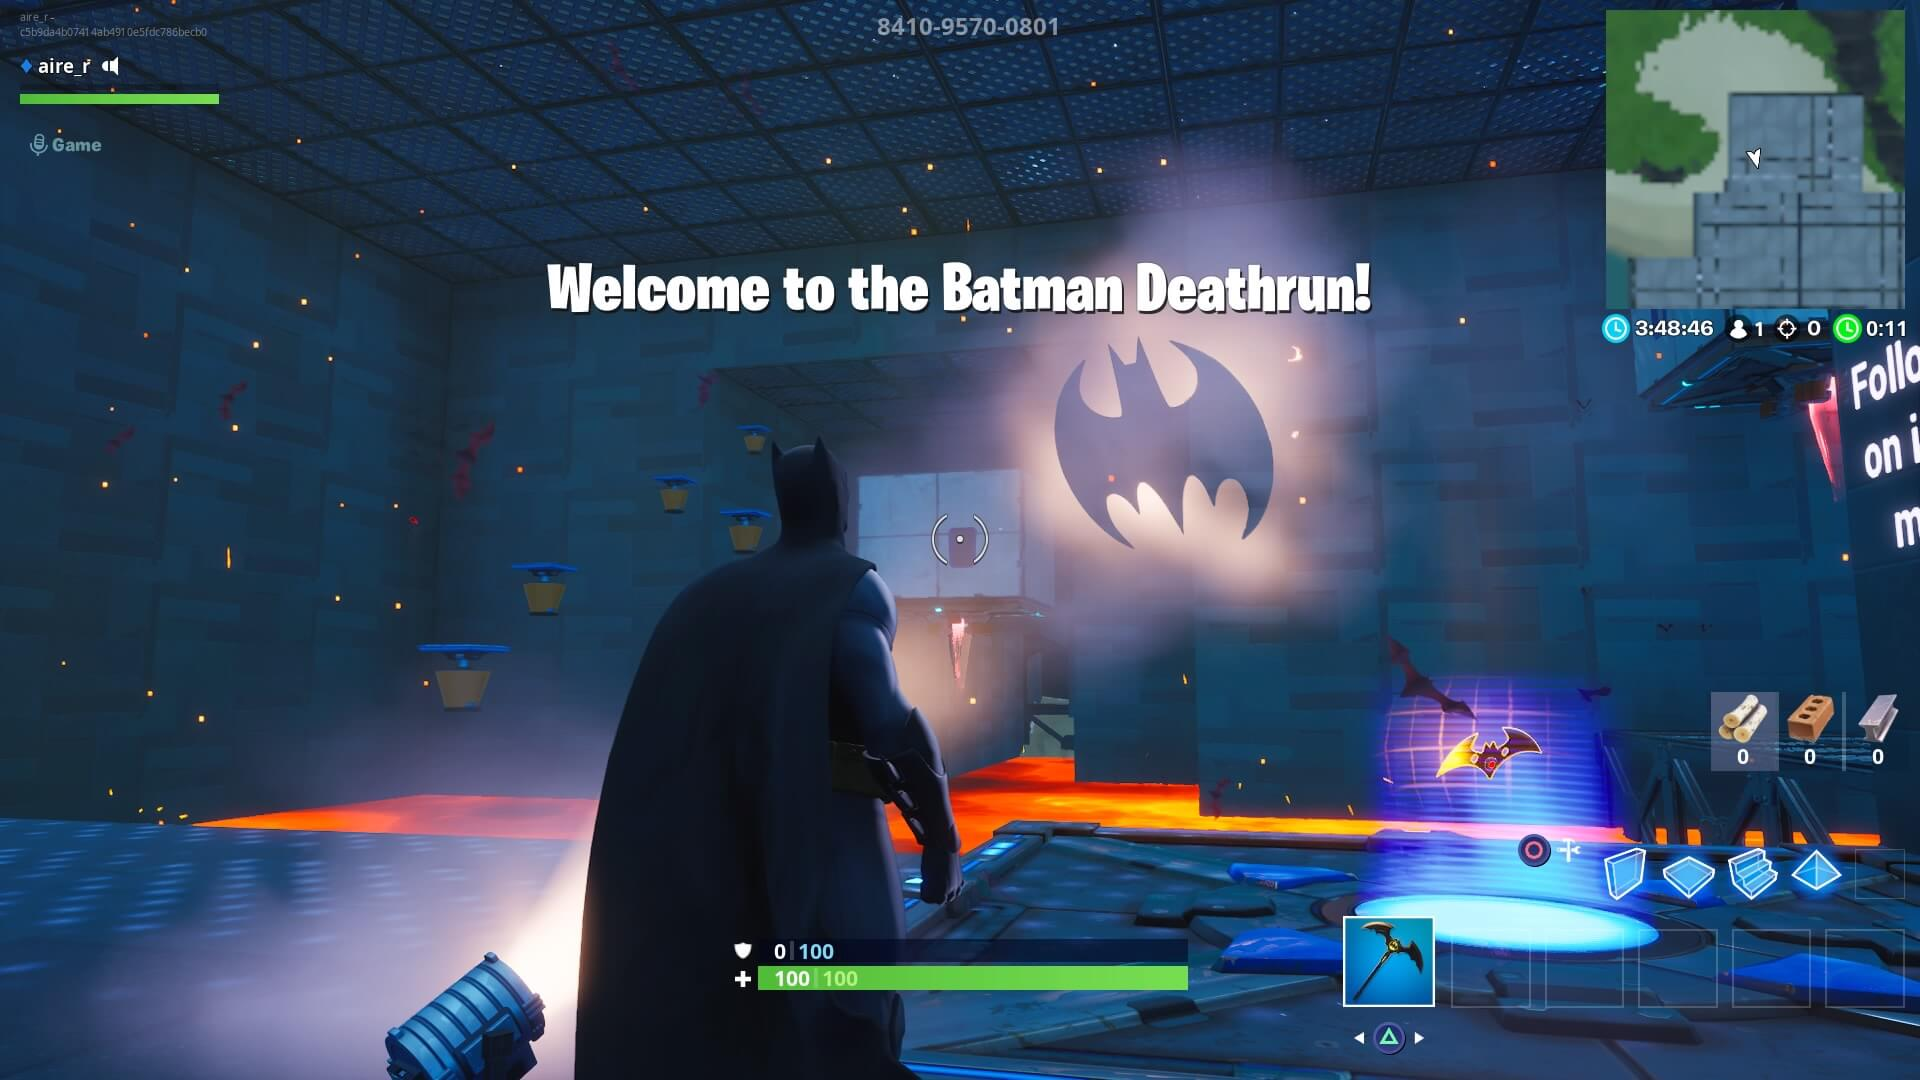 THE BATMAN DEATHRUN